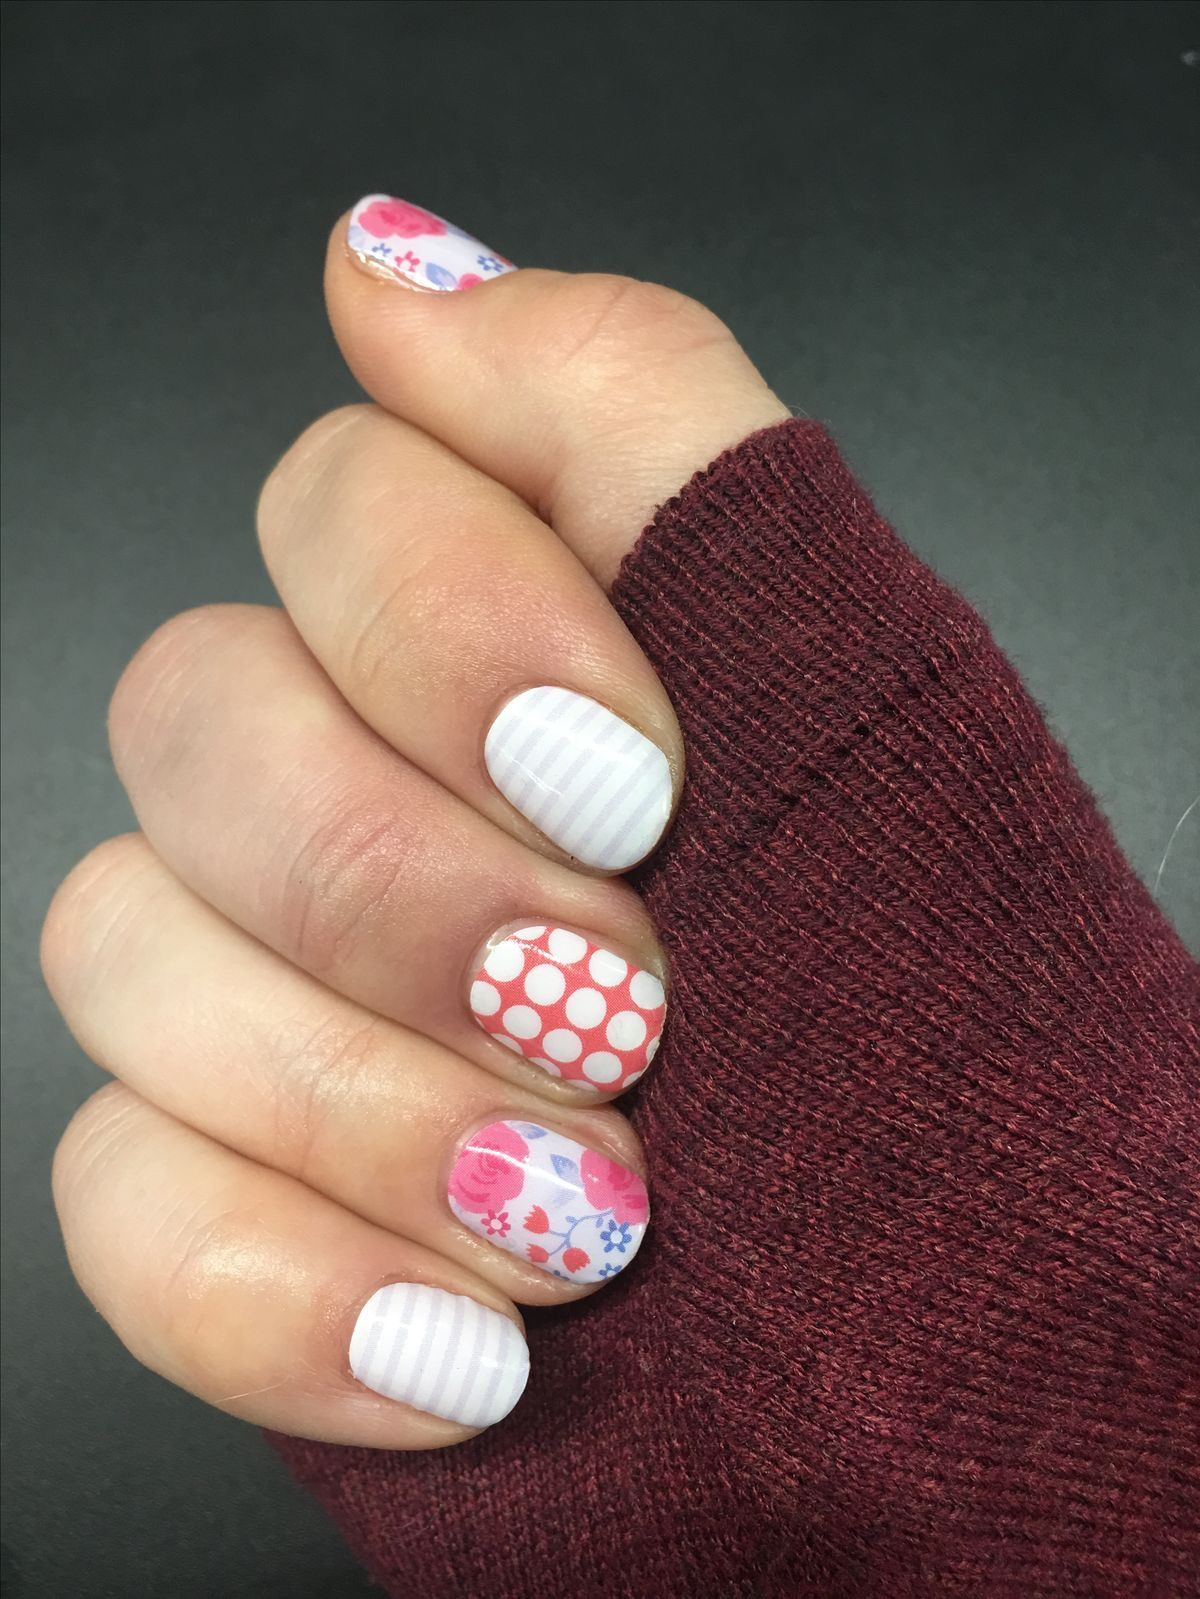 Football Nail Stickers Because #TeamSpirit Without a Jersey Is Possible